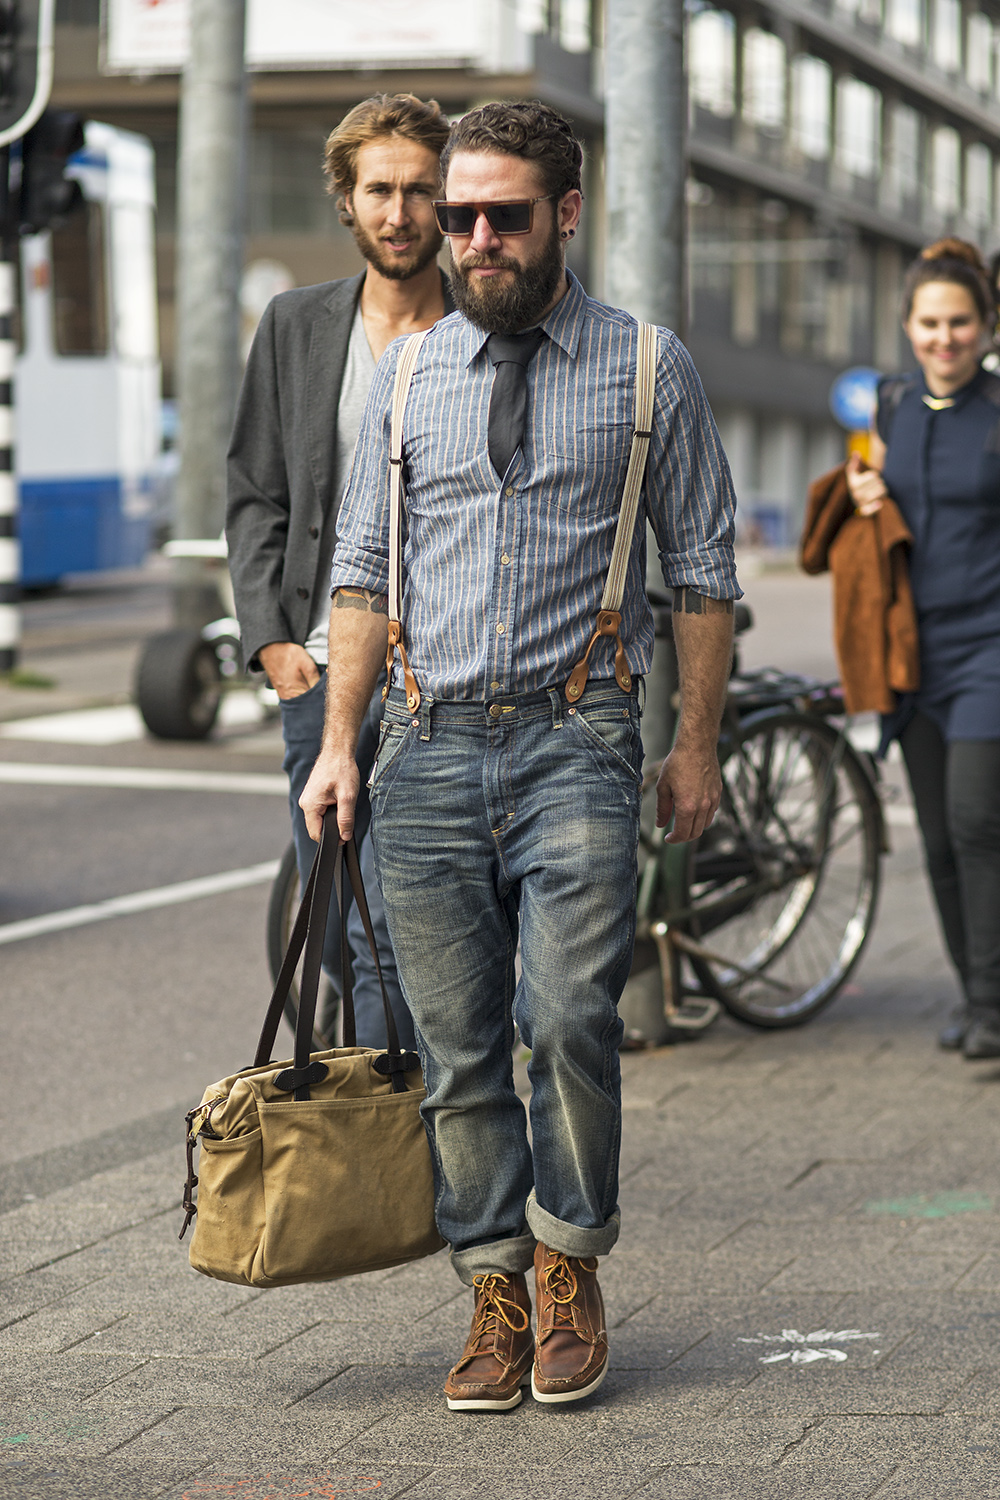 Men Street Fashion amsterdam - Copy